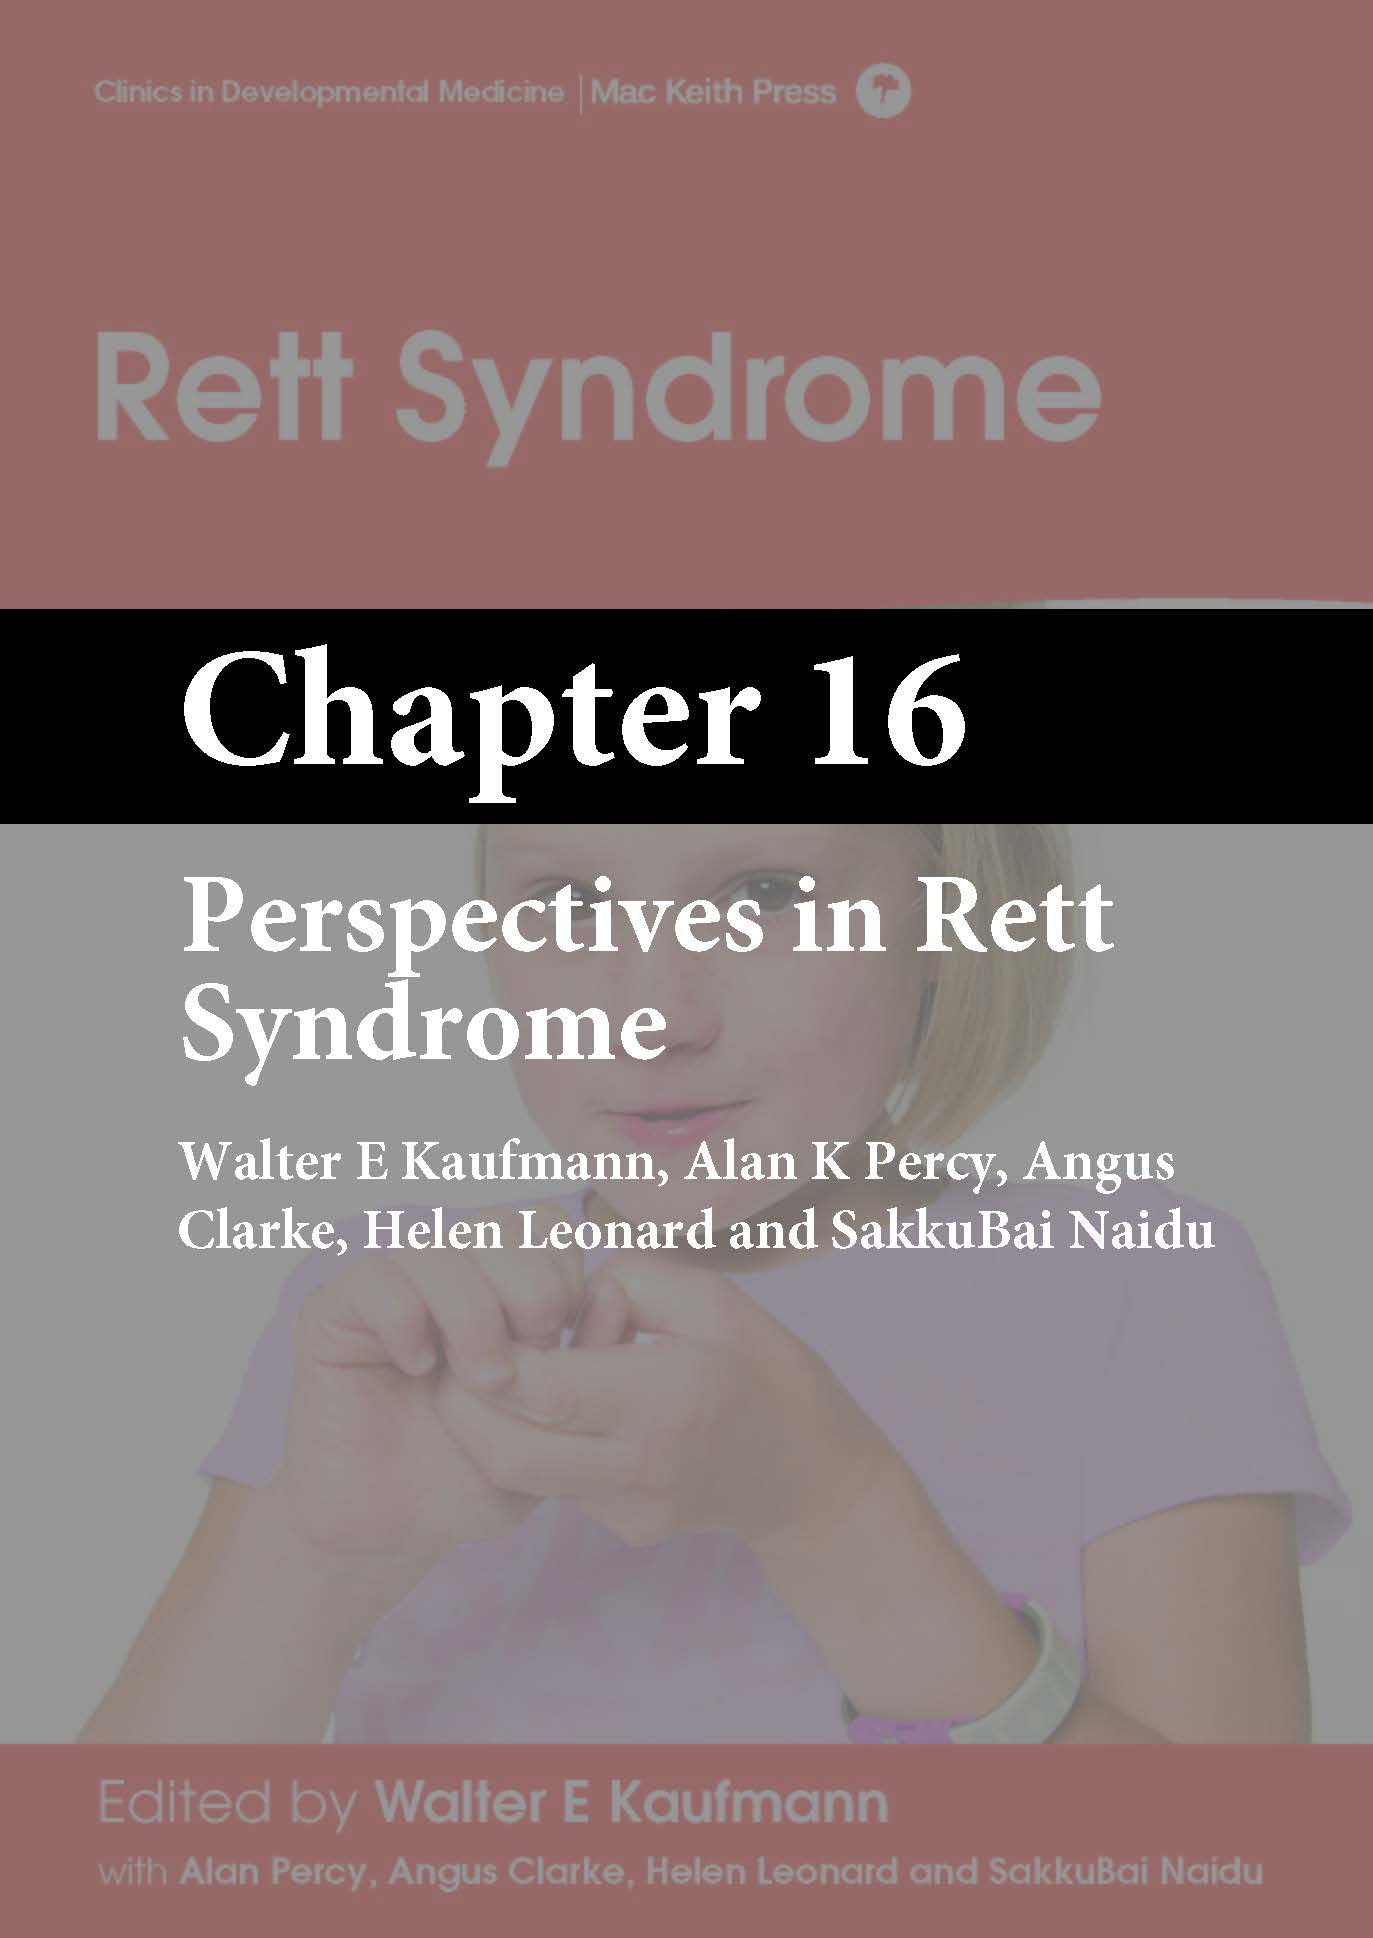 Rett Syndrome, Kaufmann, Chapter 16 cover